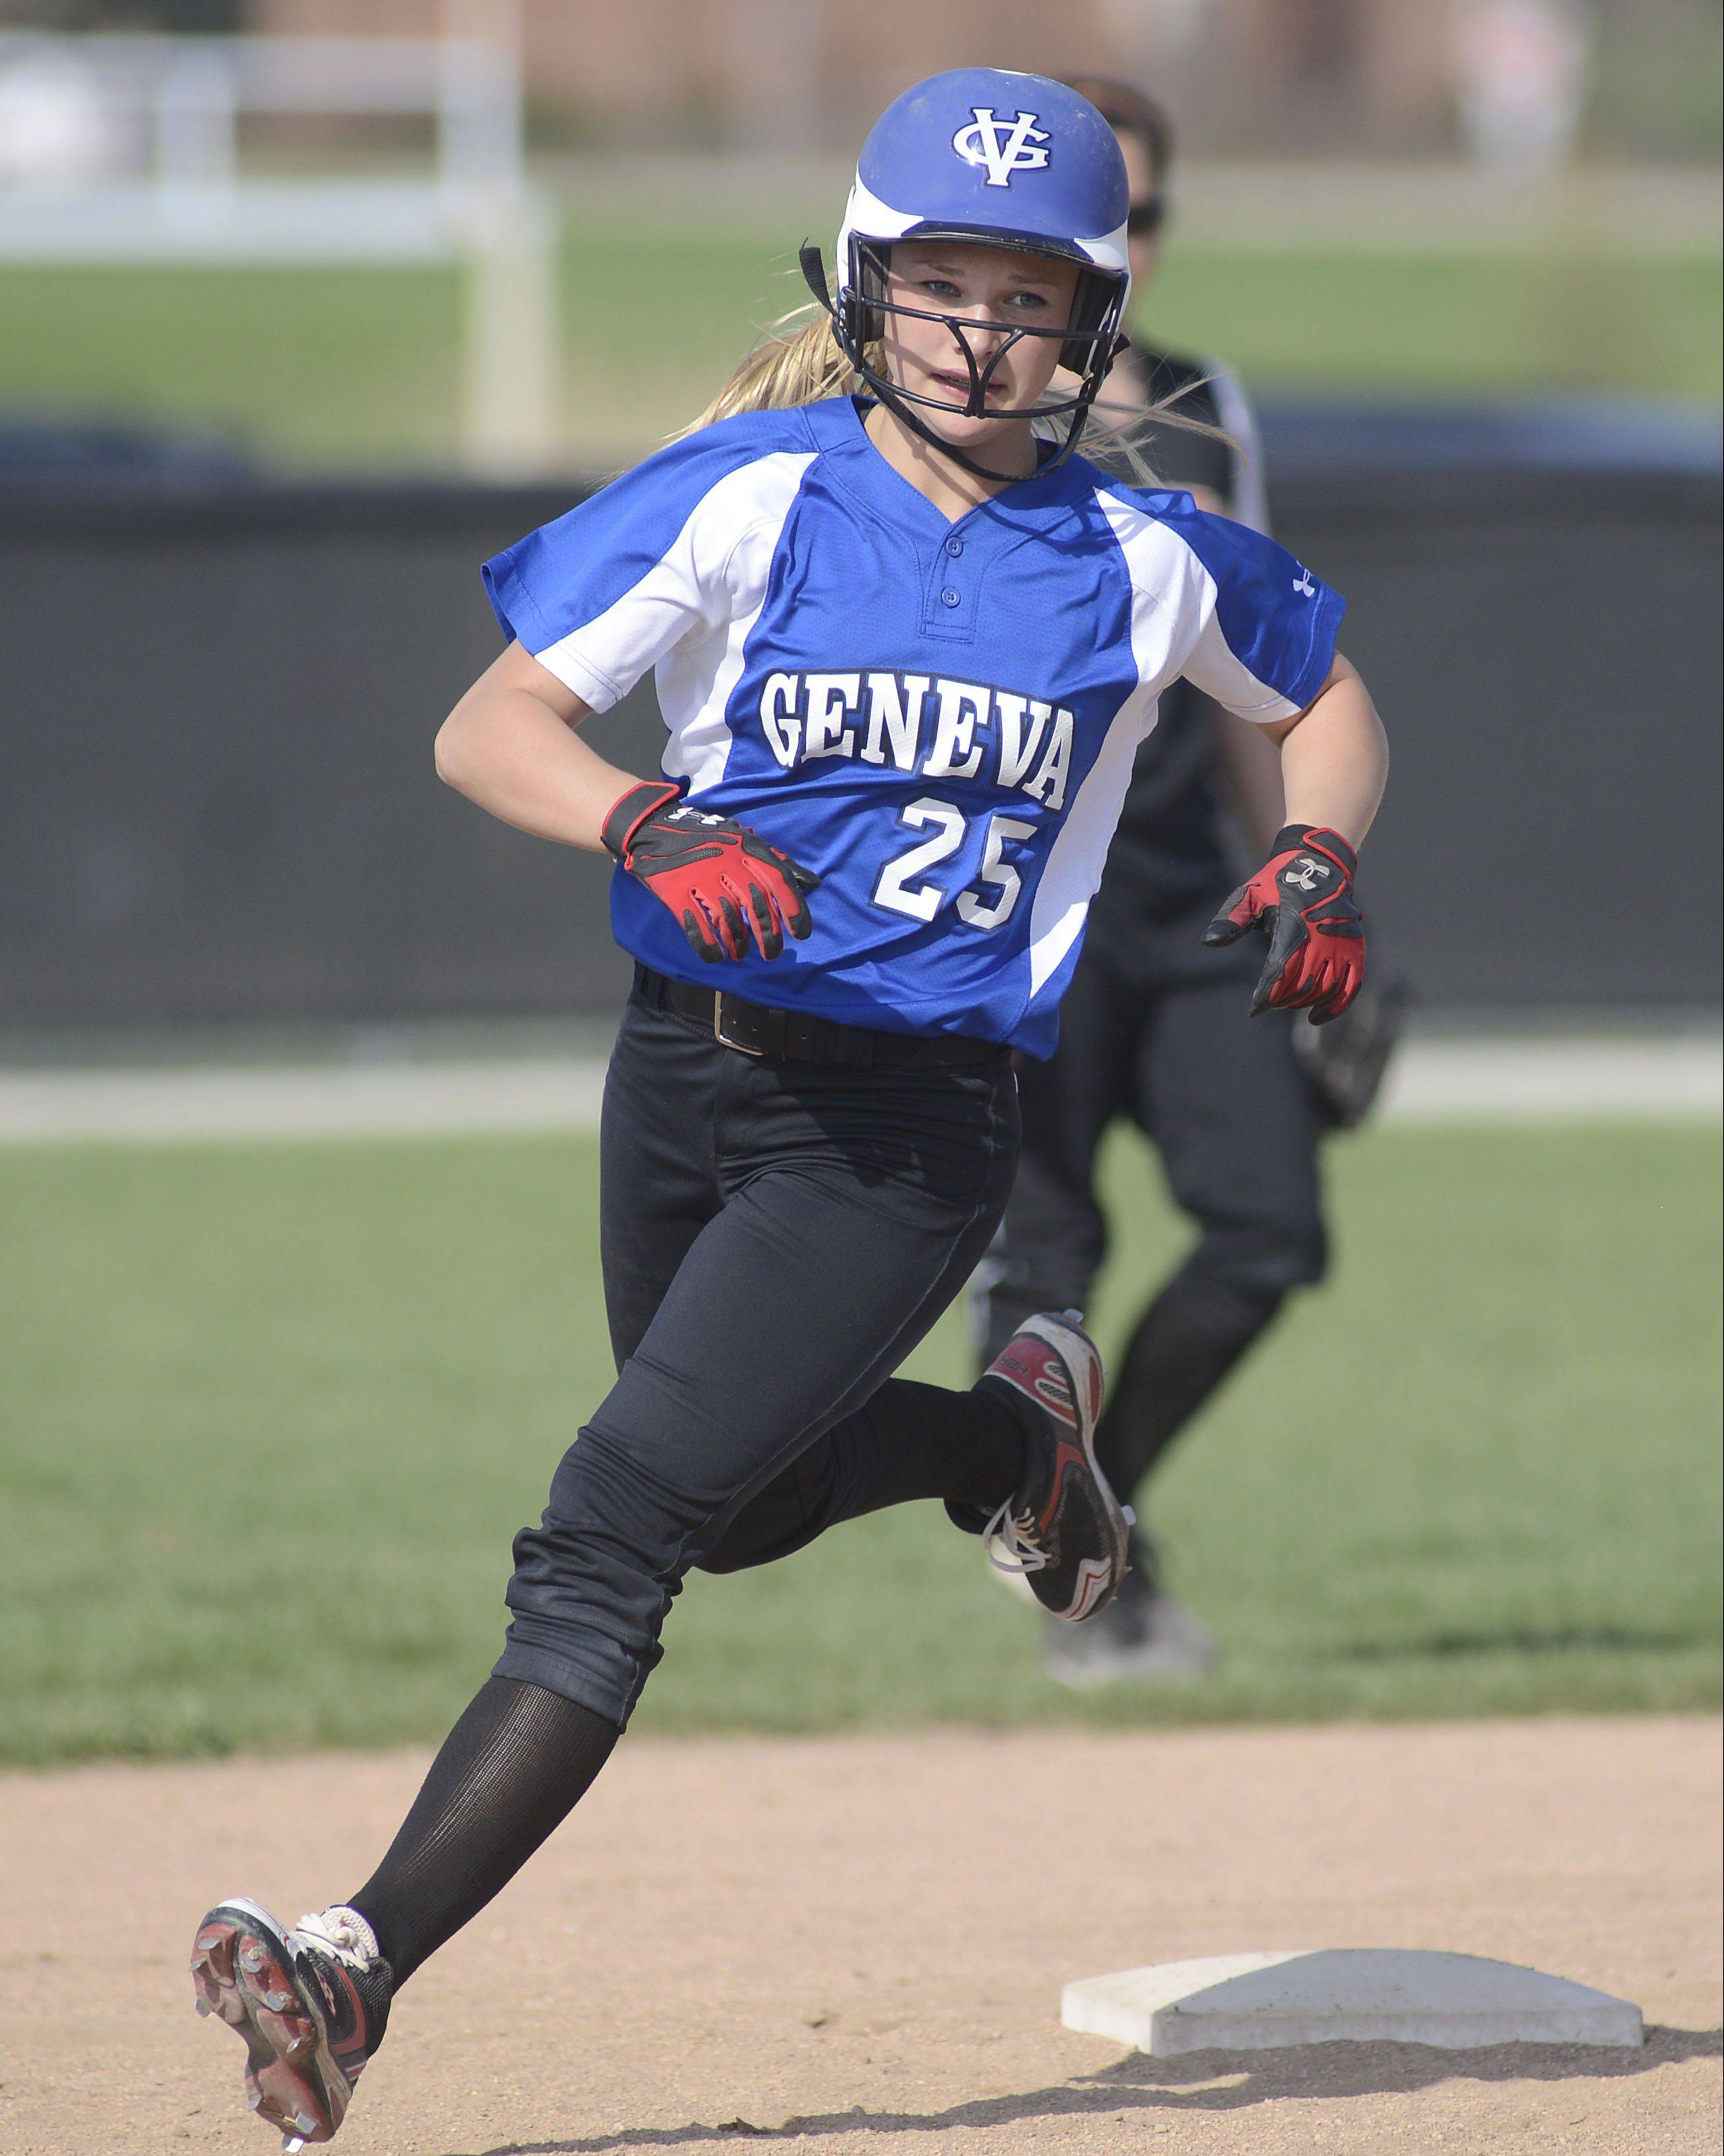 Geneva's Madison Keith rounds second base on her home run hit in the second inning on Tuesday, April 30.